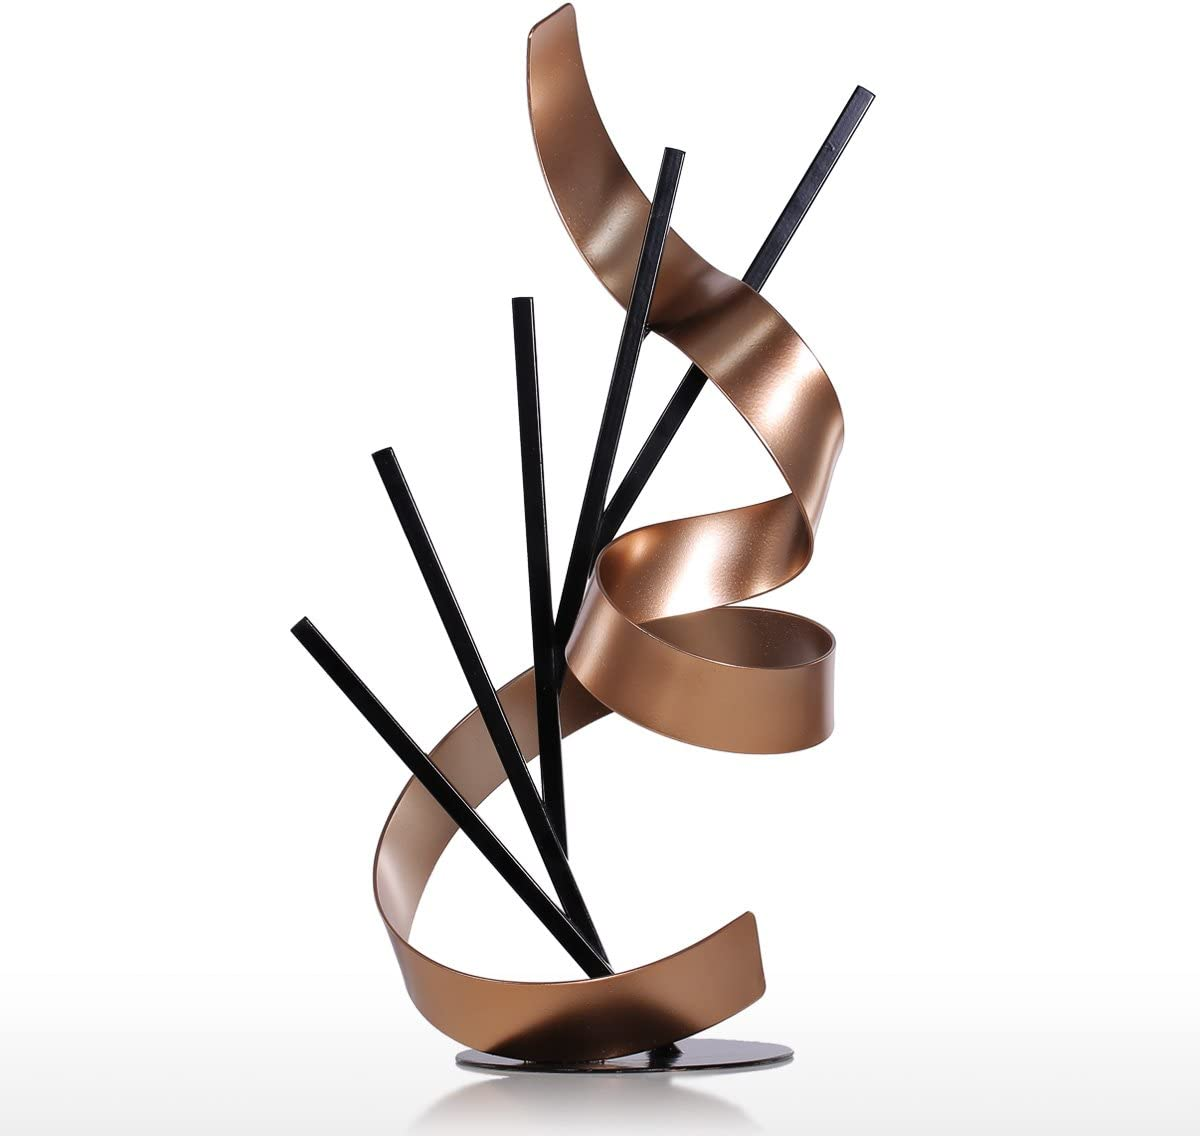 Tooarts Straight Line and Ribbon Modern Metal Sculpture Iron Statue Abstract Ornament Home Decor